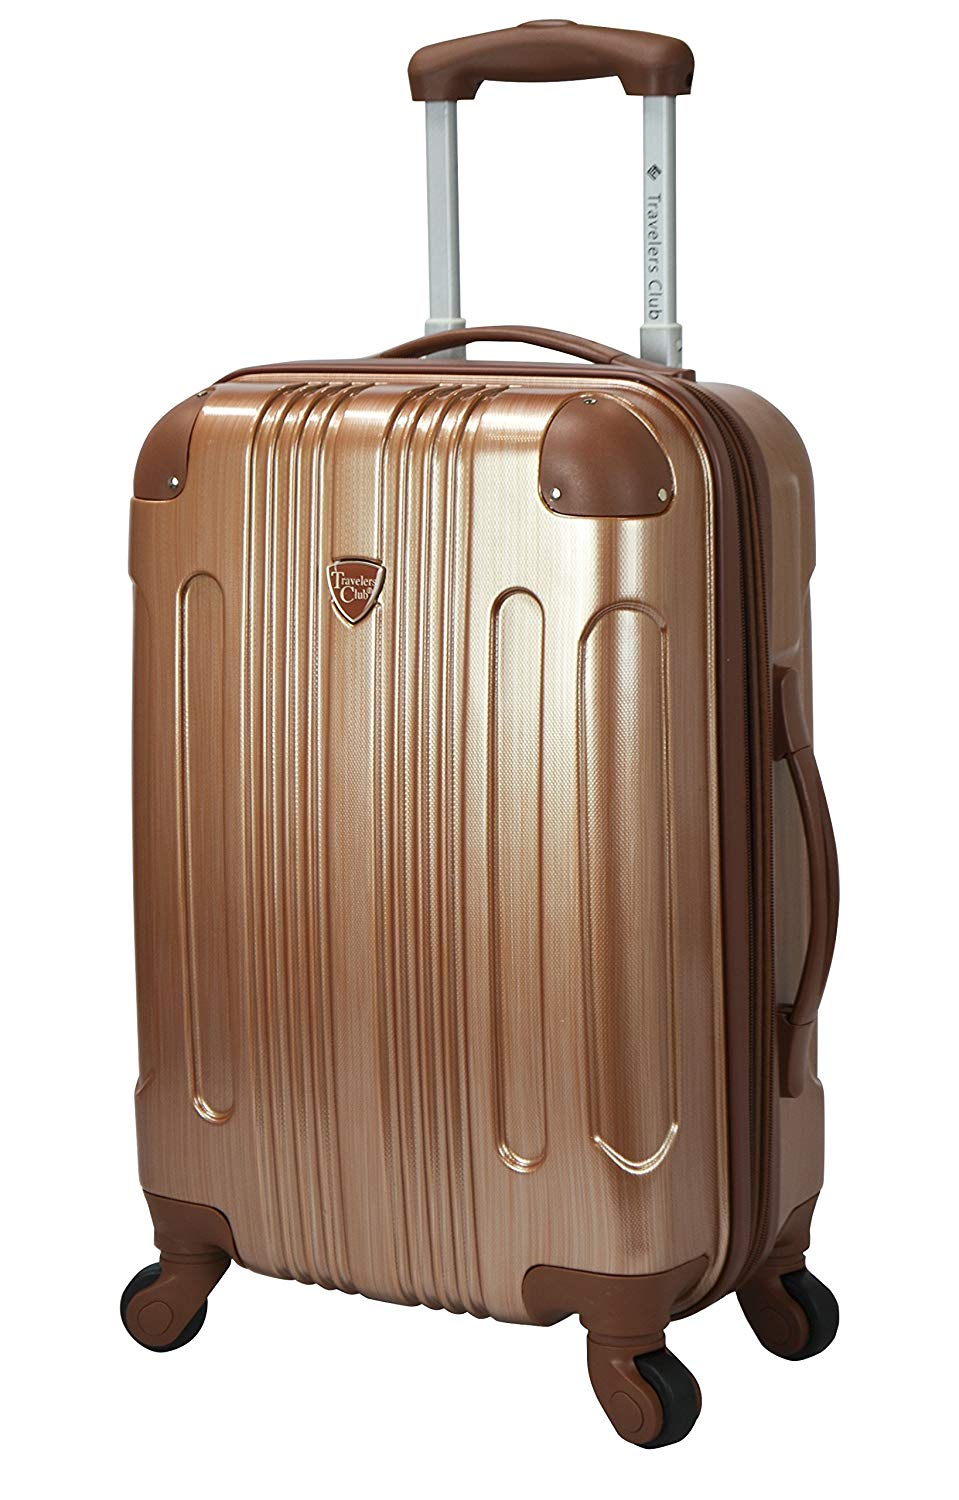 Travelers Club 20 Polaris Metallic Accented Hardside Expandable Carry-On Luggage